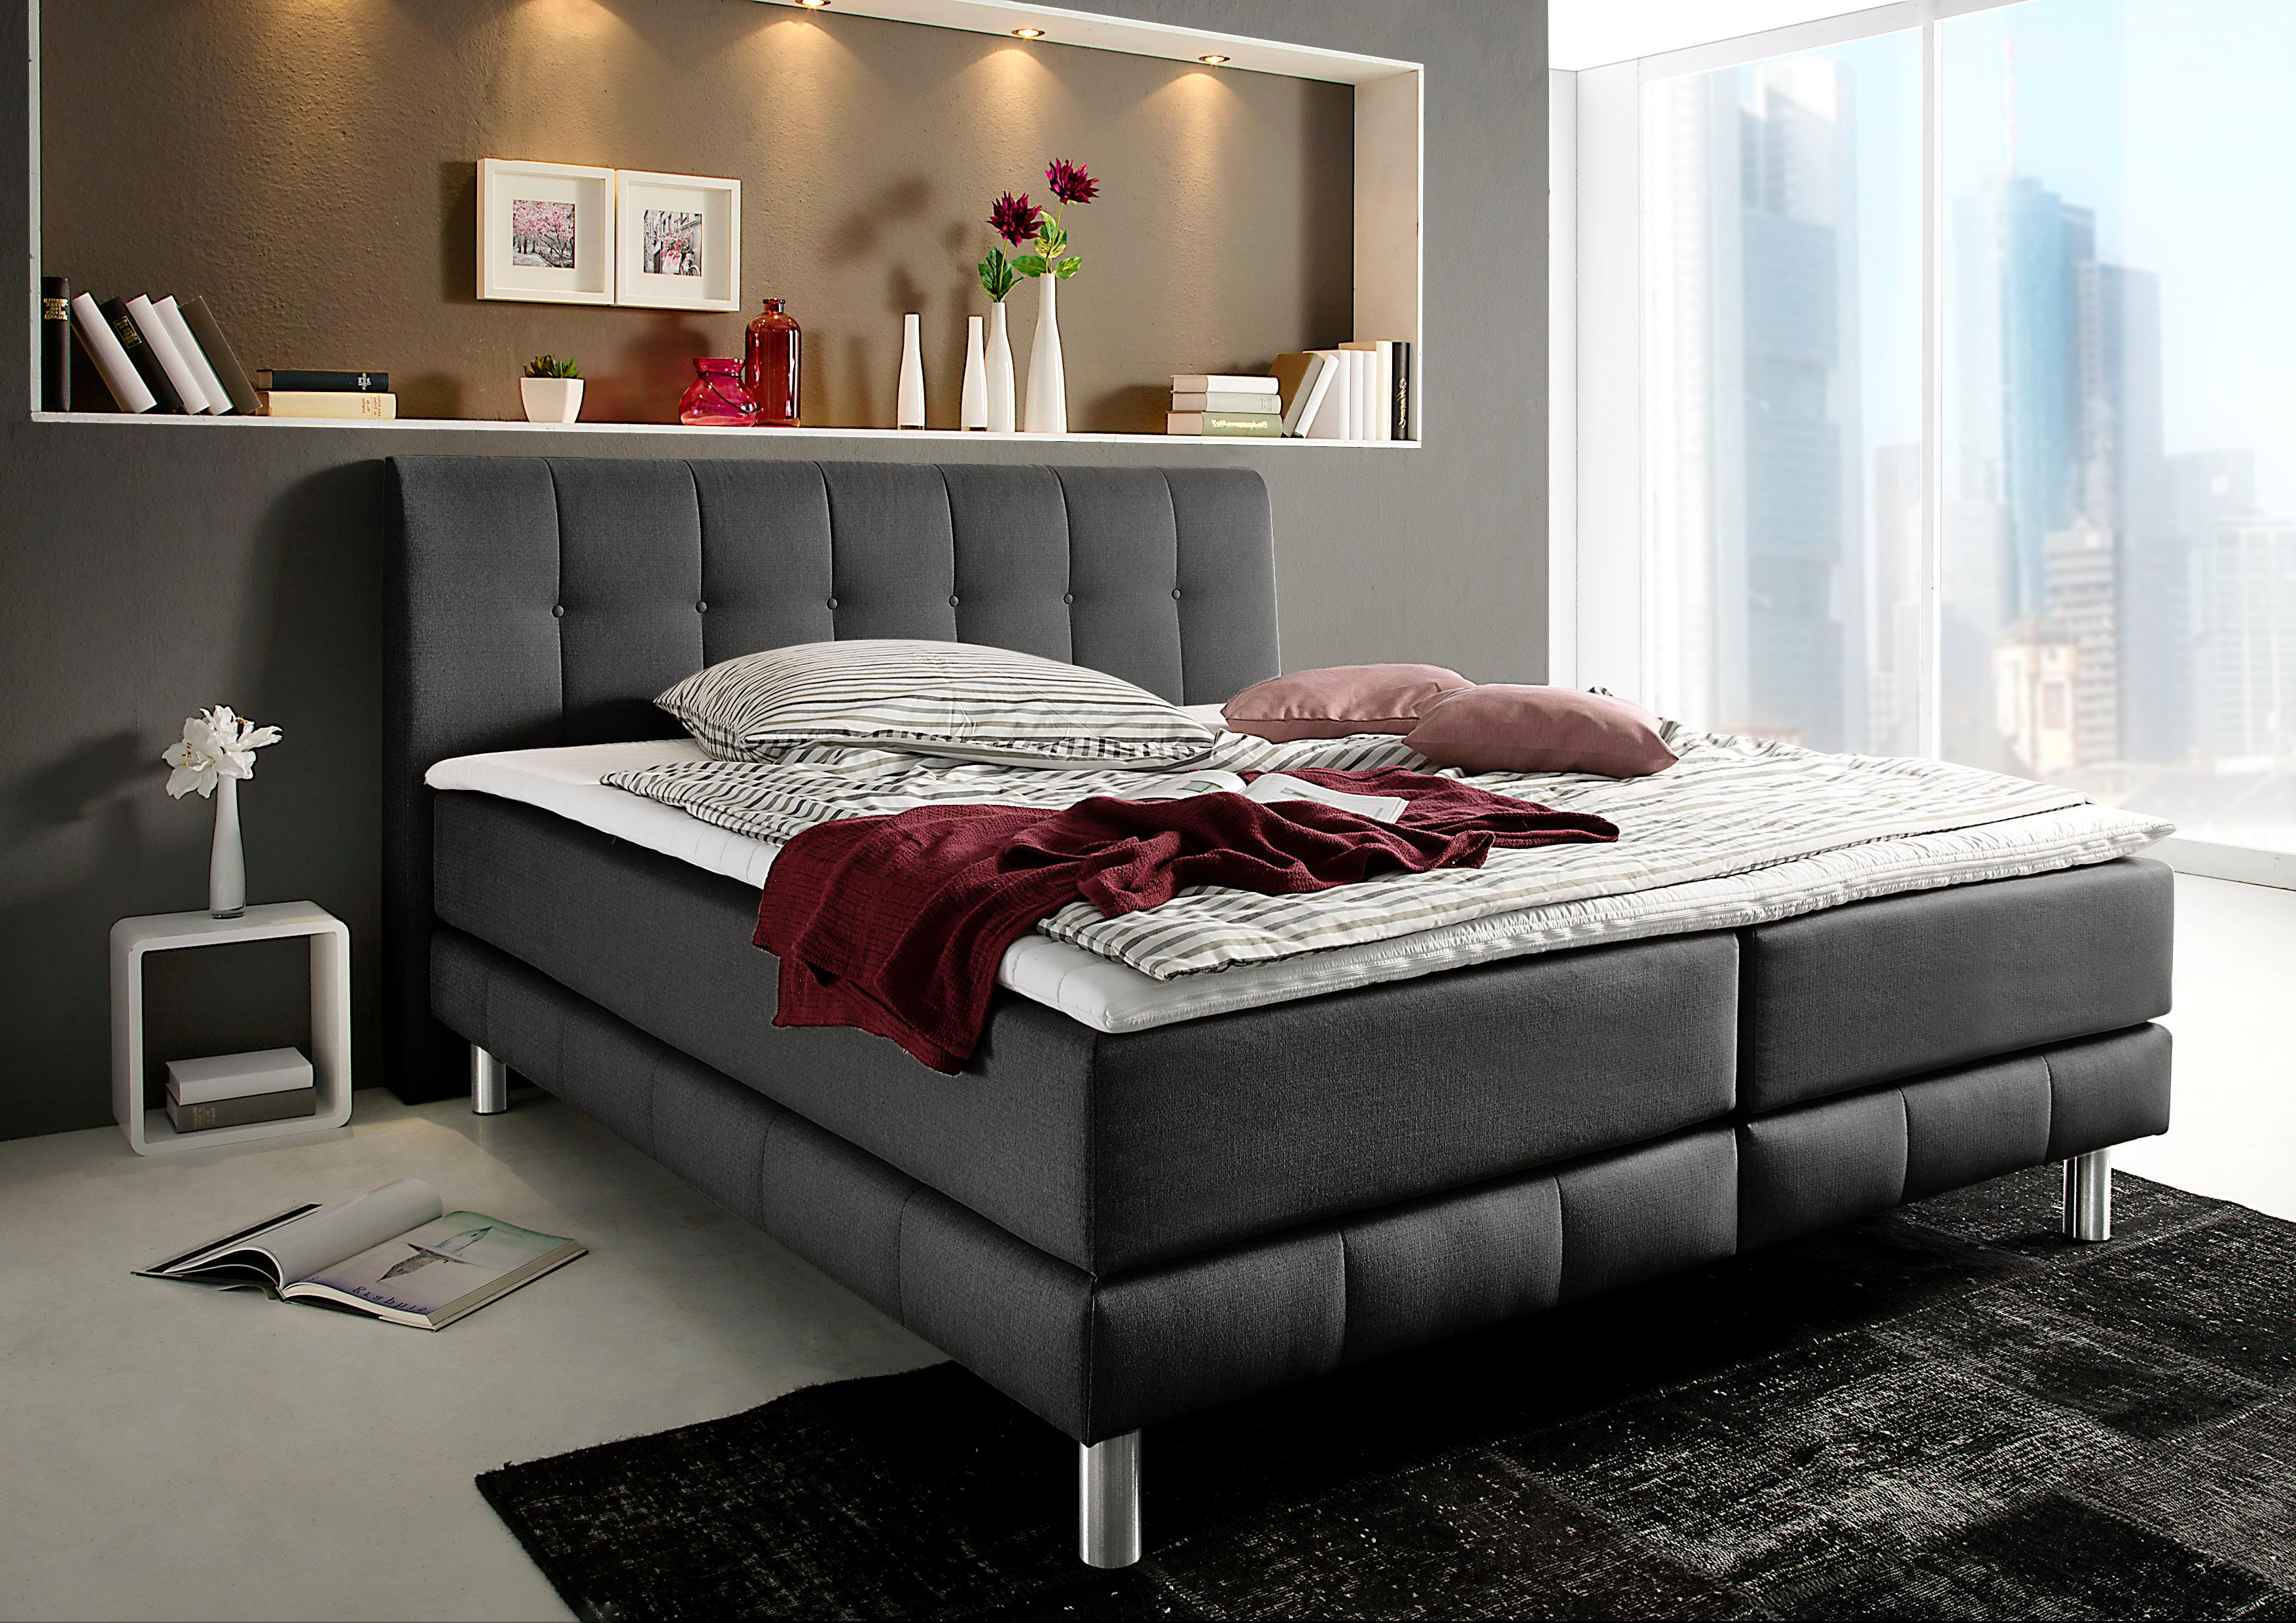 Places of Style Boxspringbett »Kalmar« | Schlafzimmer > Betten | PLACES OF STYLE